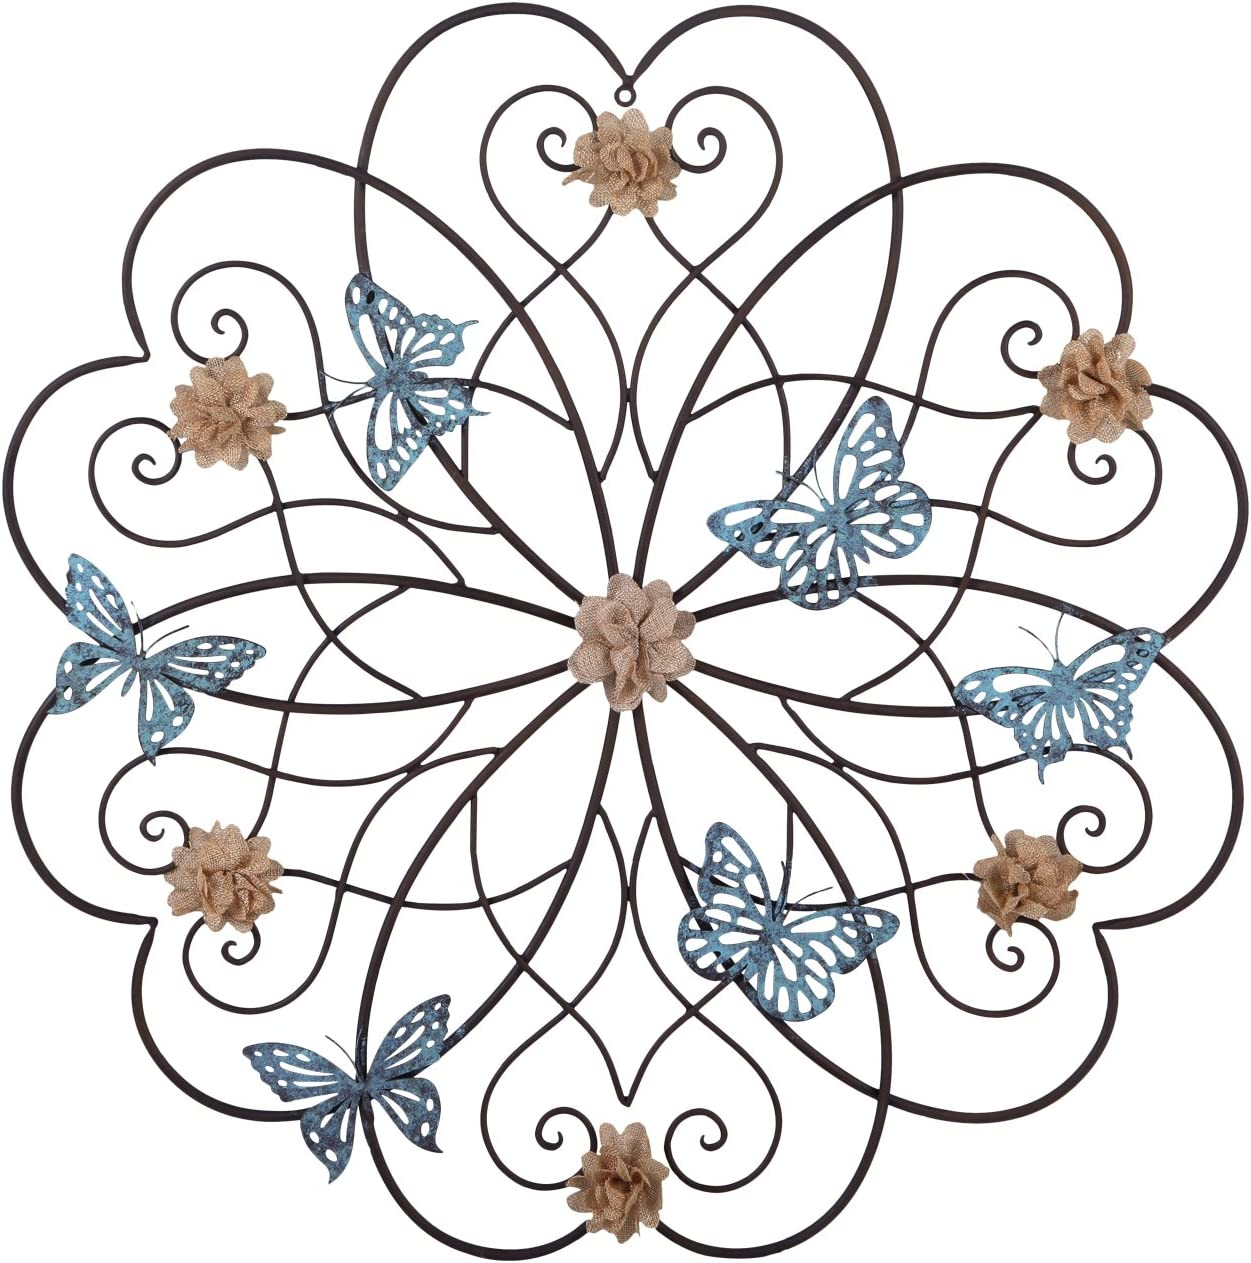 Asense Metal Wall Decor, Flower and Butterfly Design